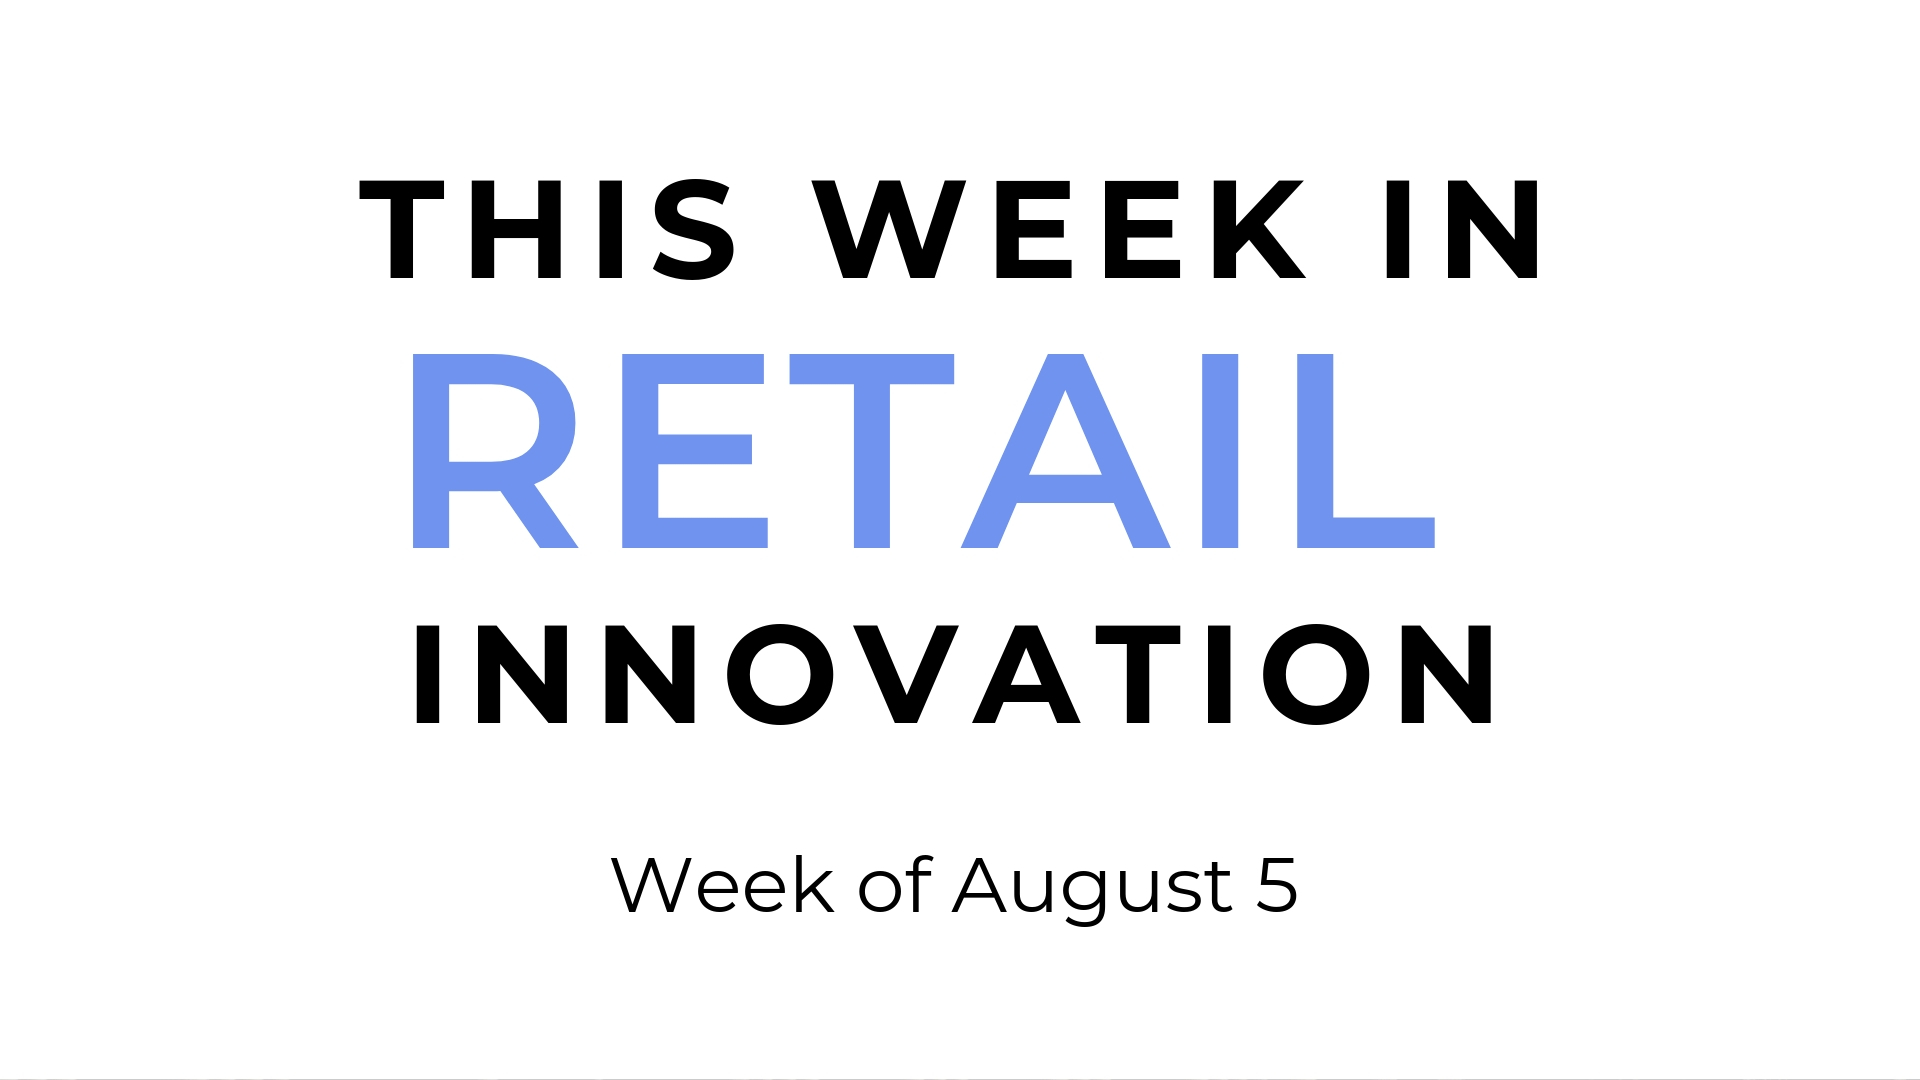 Perch_Content_This Week in Retail Innovation_Macys_Grocery,Beauty_UPS_FAA.jpg